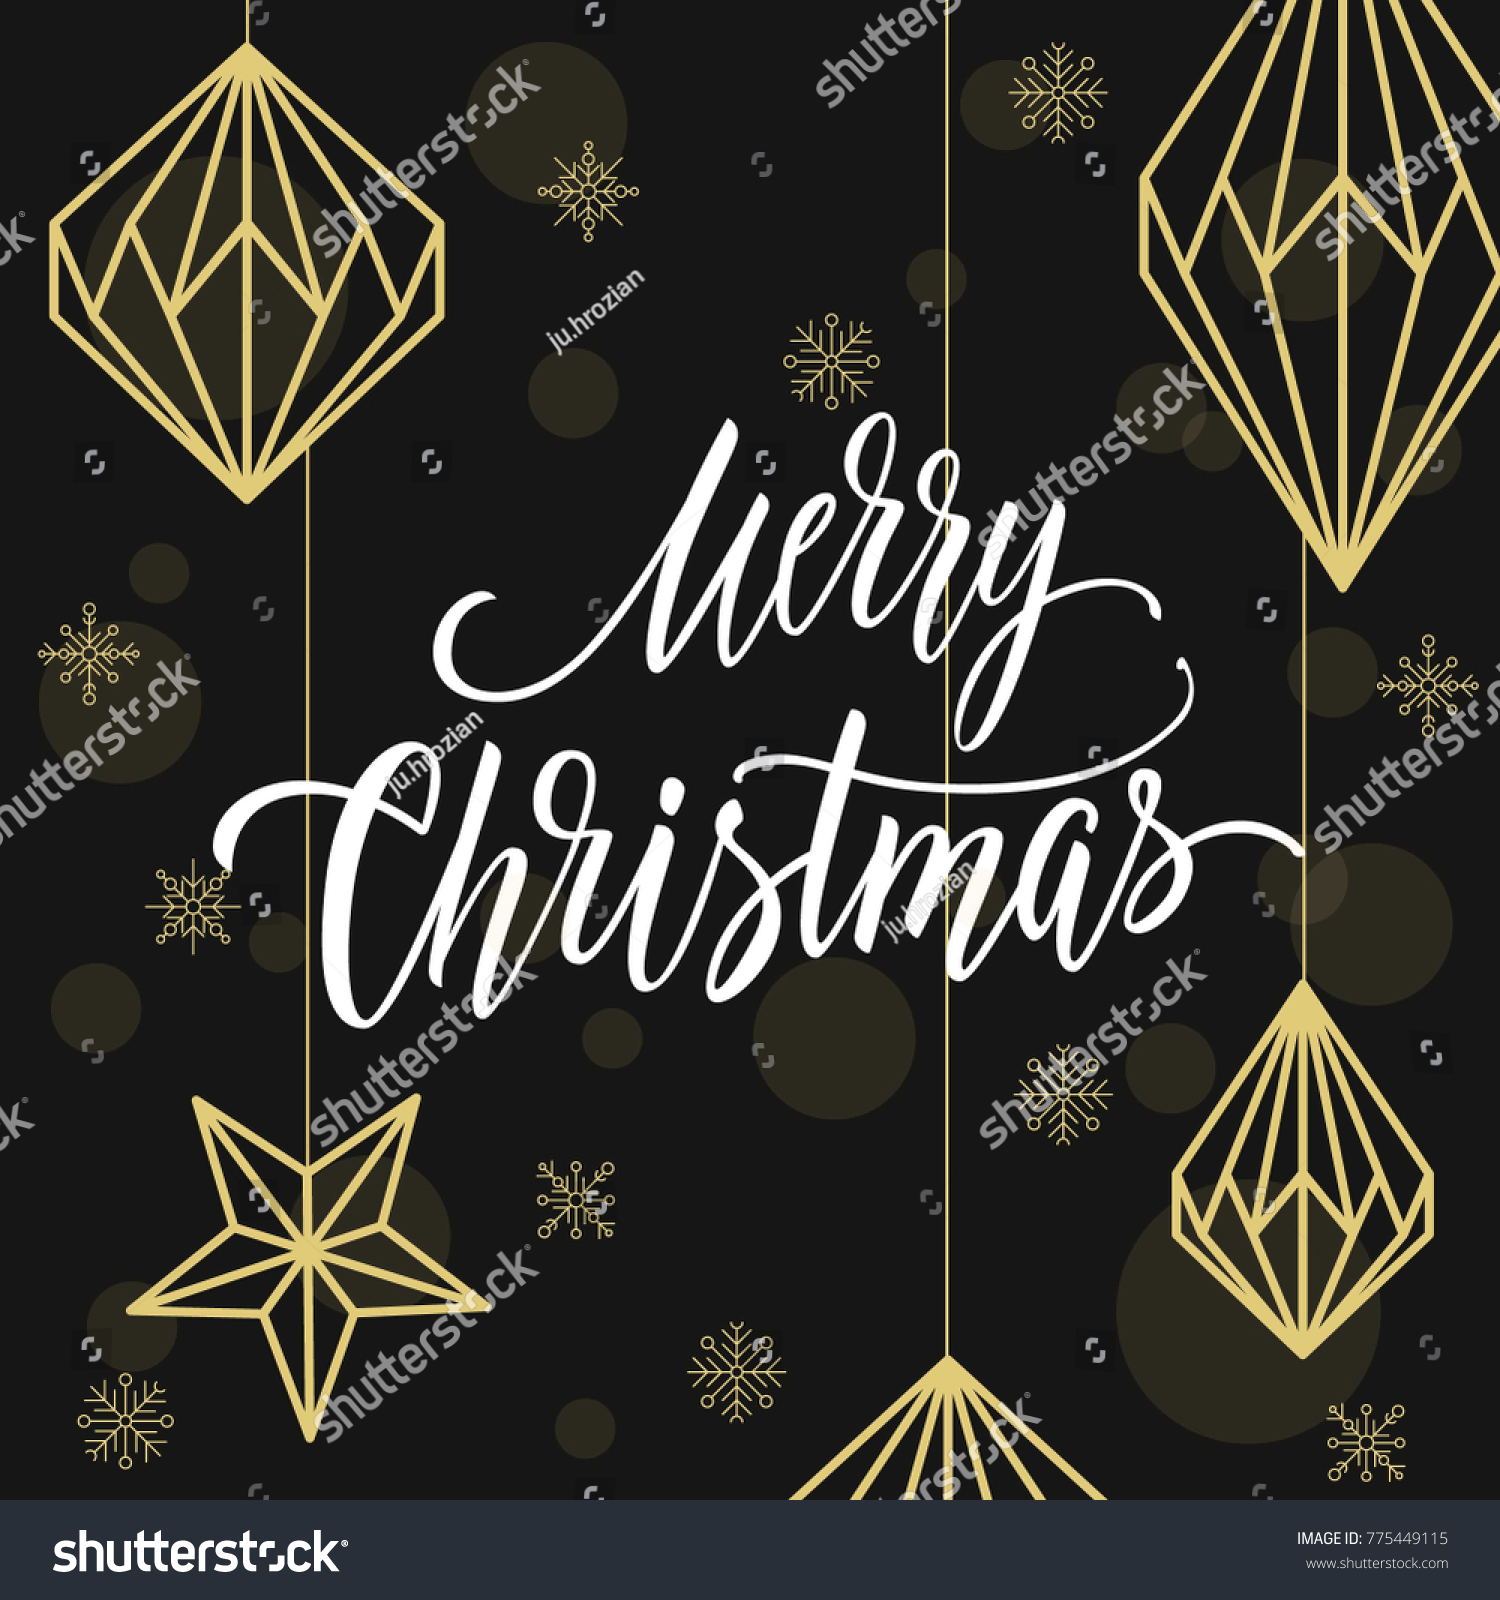 Modern Calligraphy And Geometric Christmas Decorations Merry